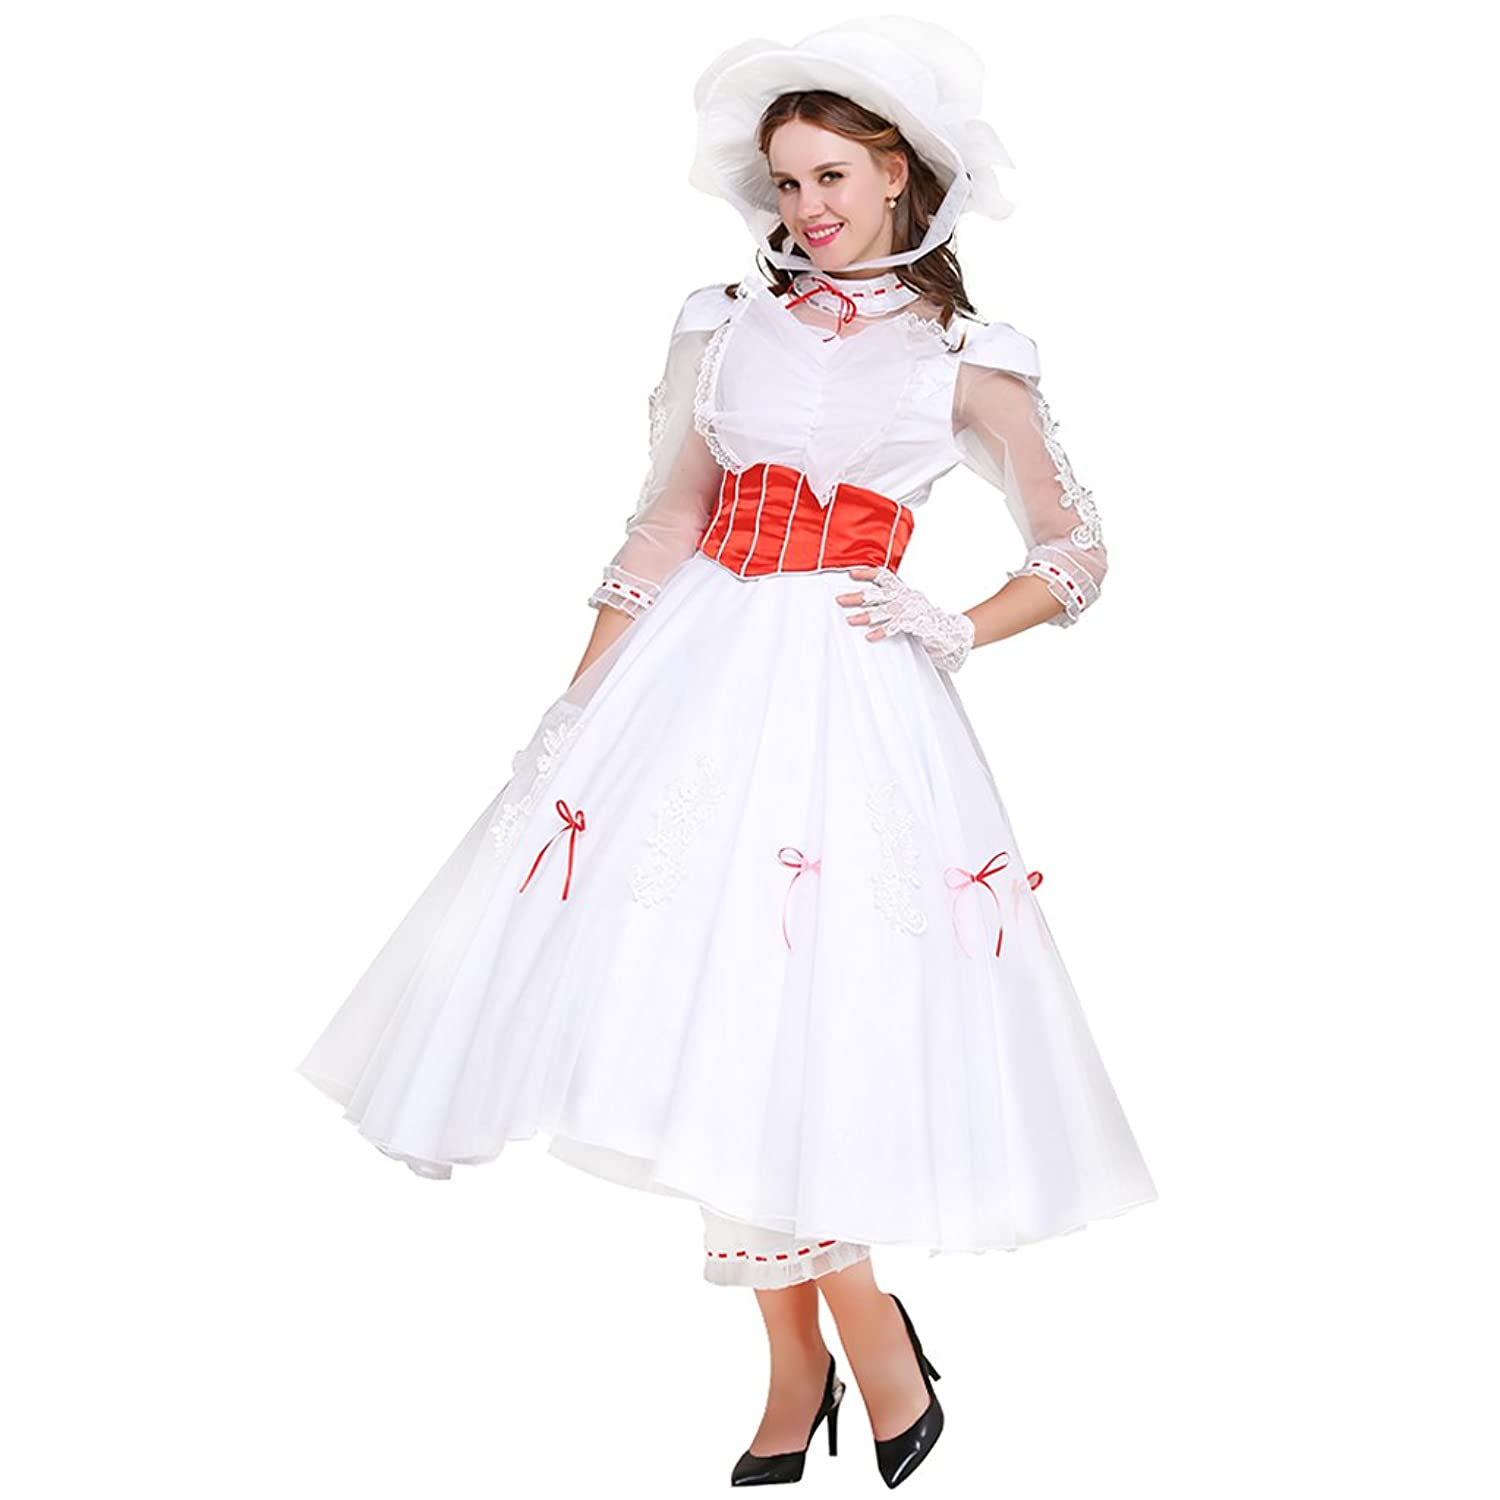 TitanicStyleDressesforSale Dress for Mary Poppins Princess Cosplay $133.00 AT vintagedancer.com